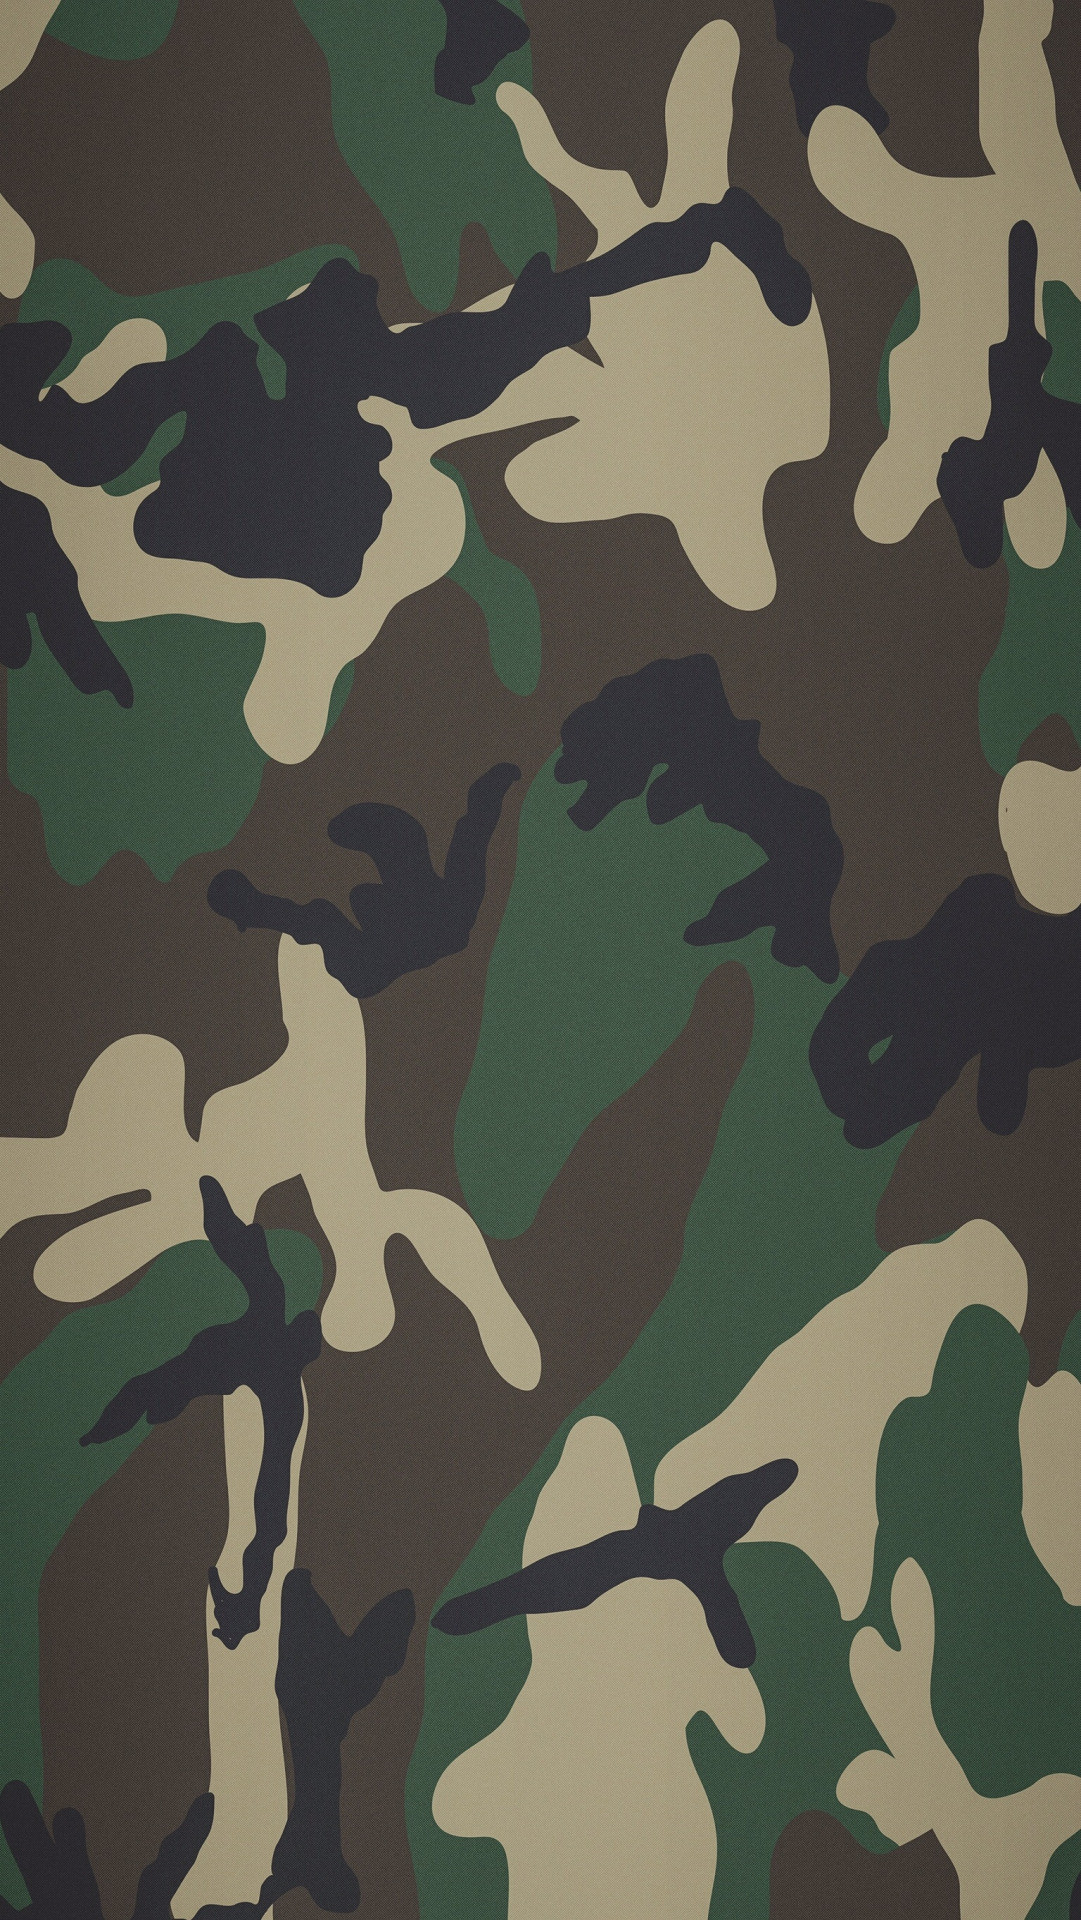 1081x1920 1920x1200 free camo backgrounds download #11077. Download. camo wallpapers